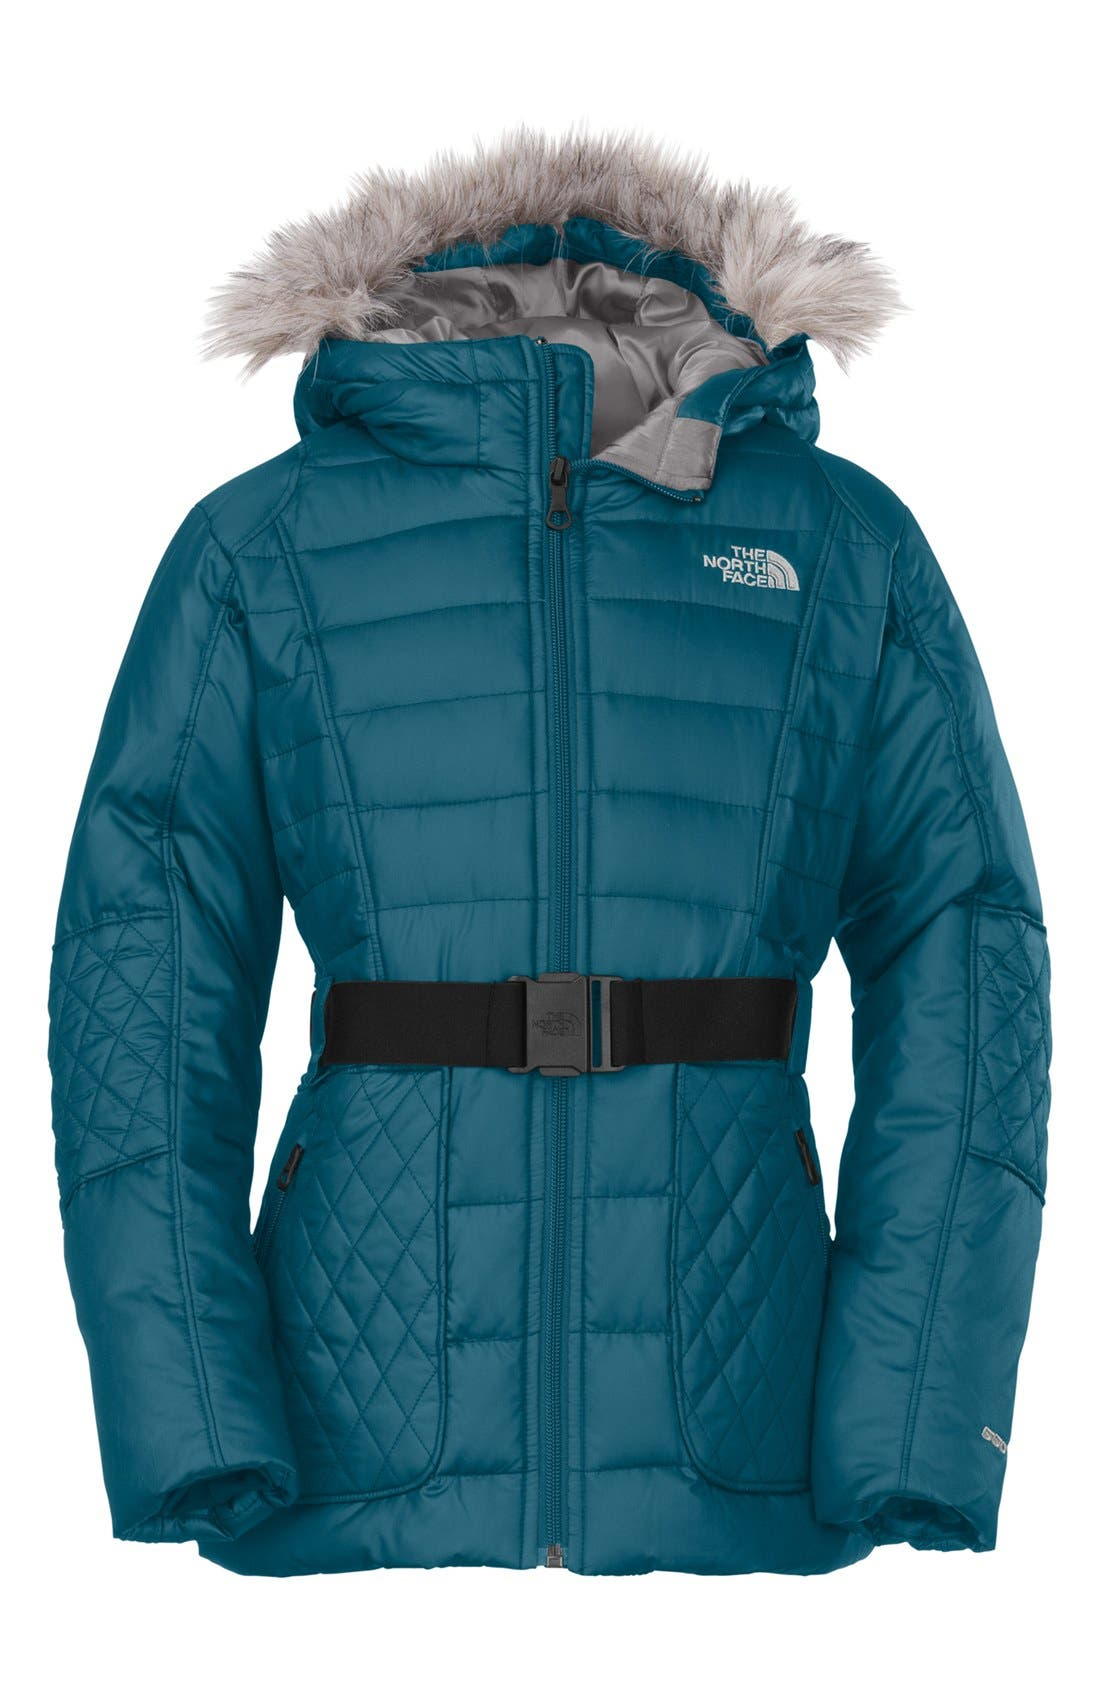 Alternate Image 1 Selected - The North Face 'Parkina' Down Jacket (Little Girls & Big Girls)